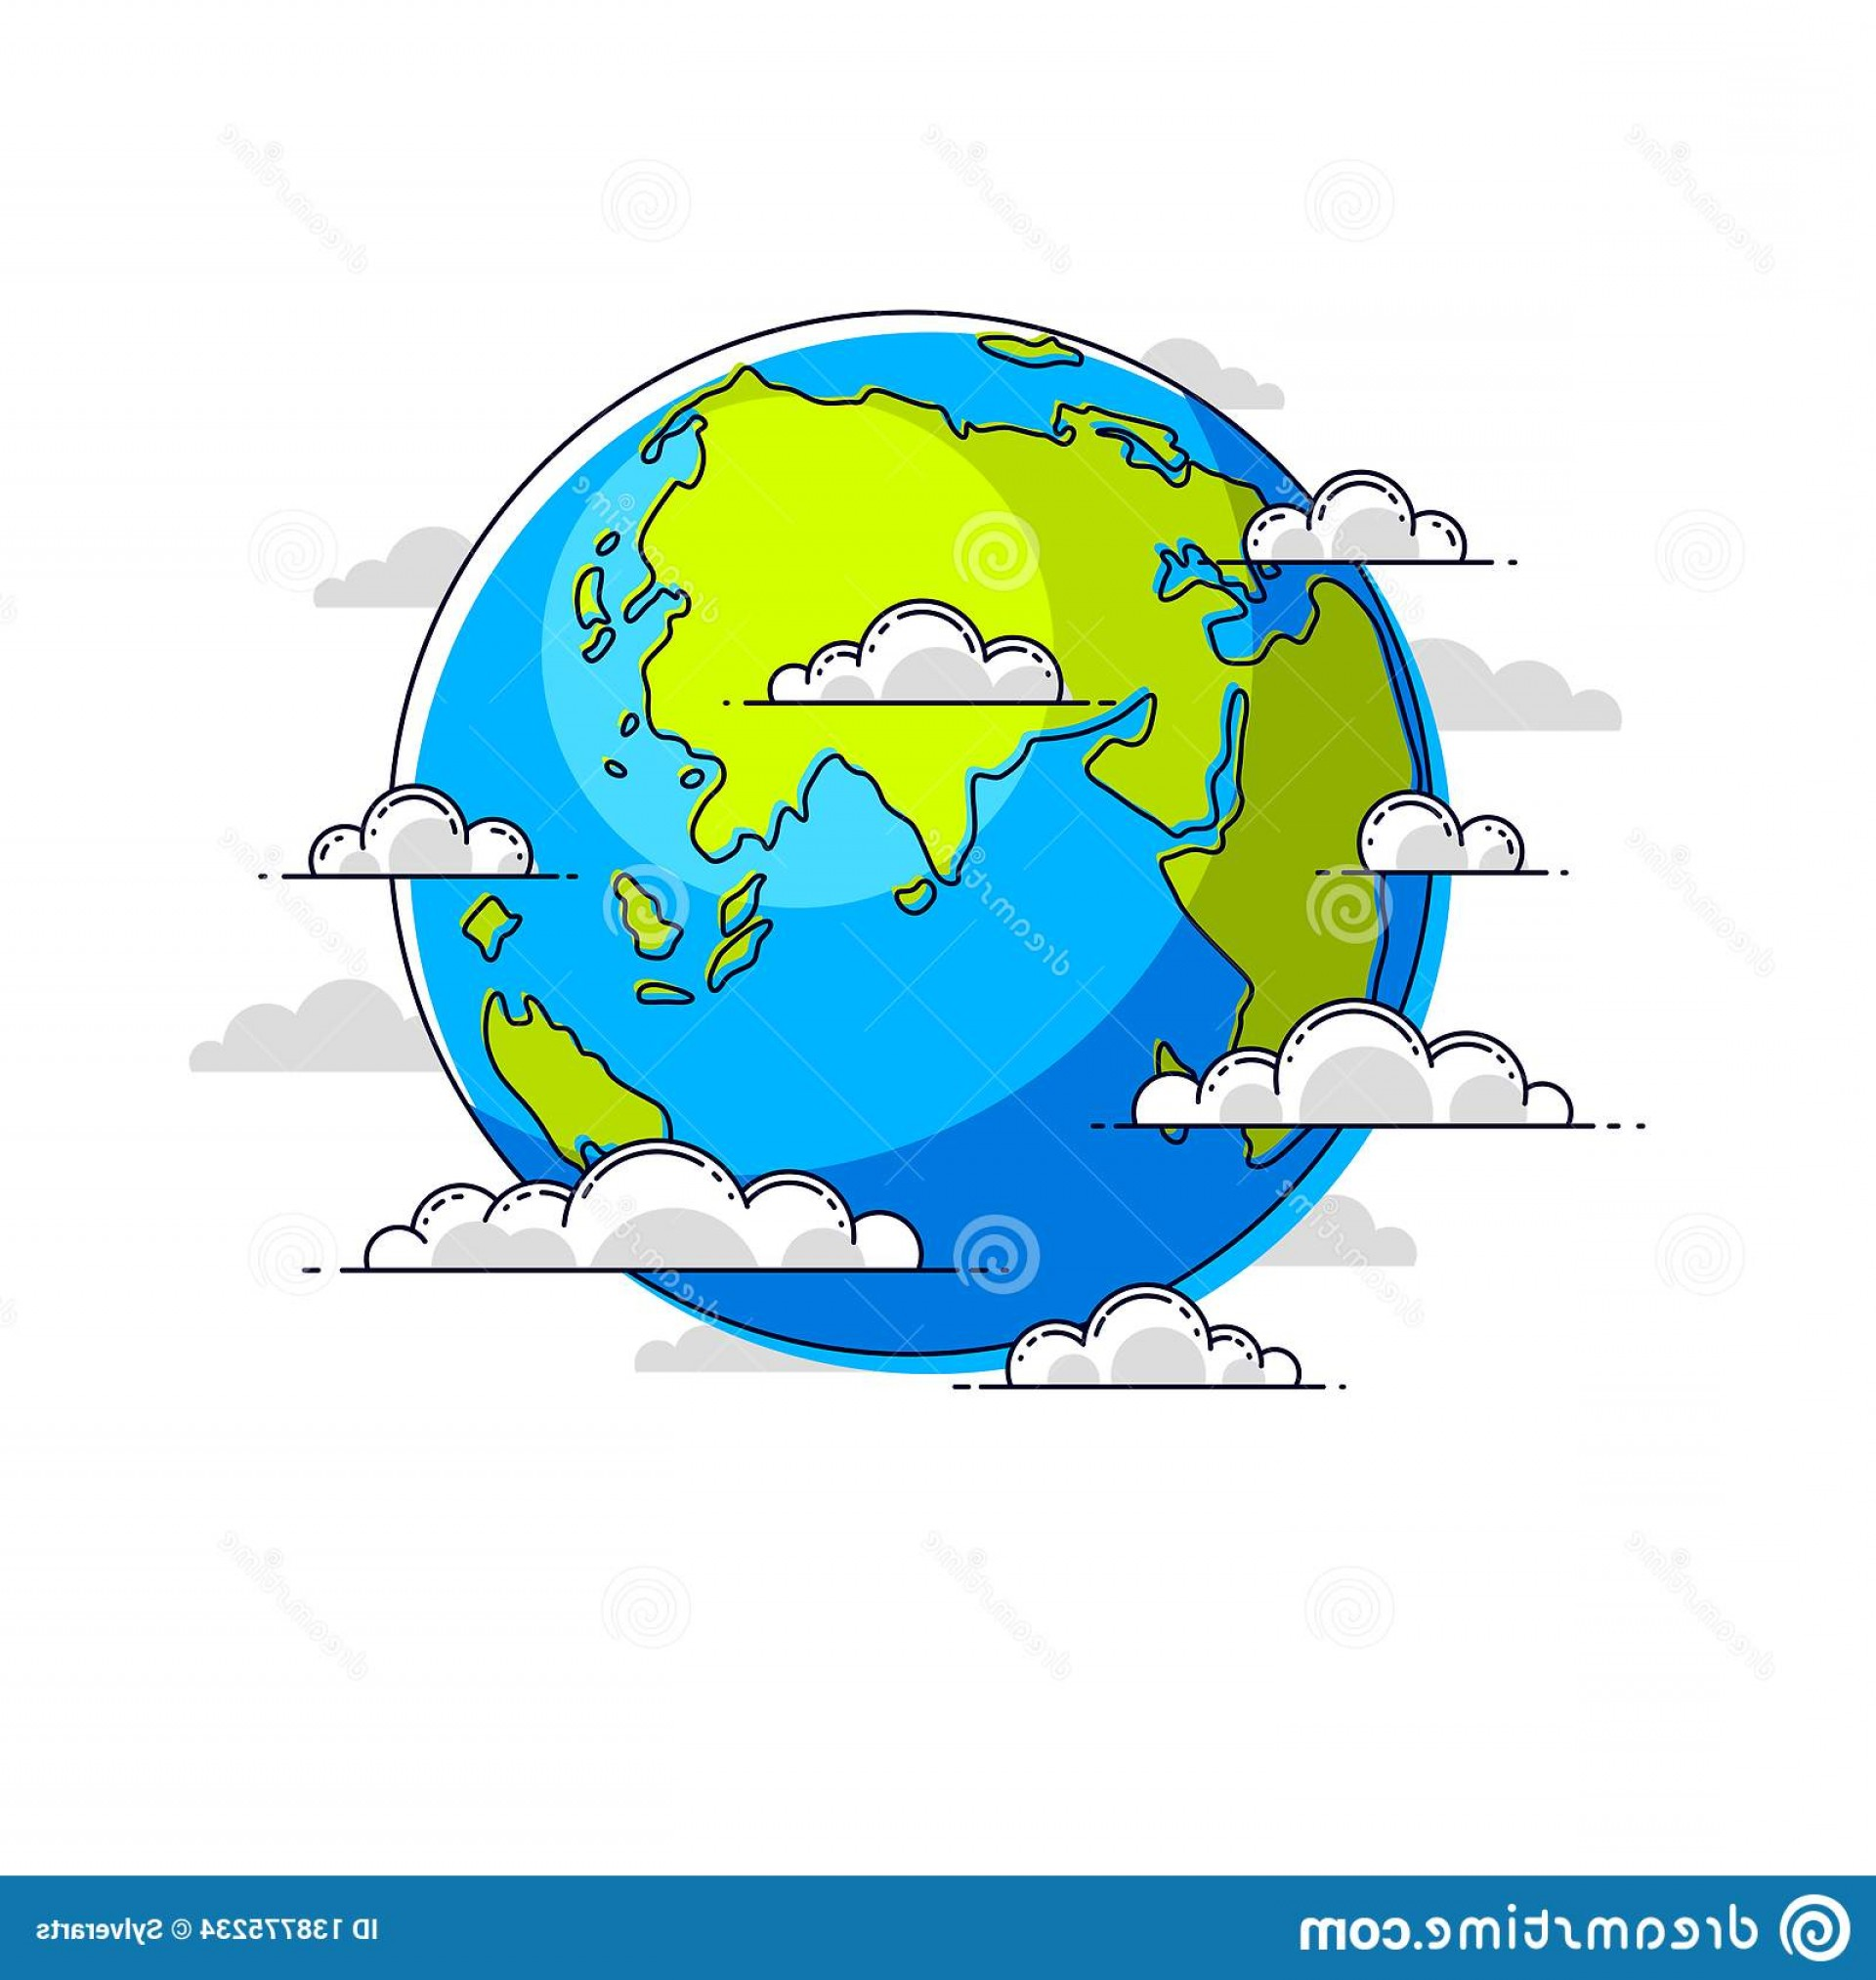 Erth Vector: Planet Earth Vector Illustration Isolated White Background Africa Europe Eurasia Asia Australia Continents Side Image